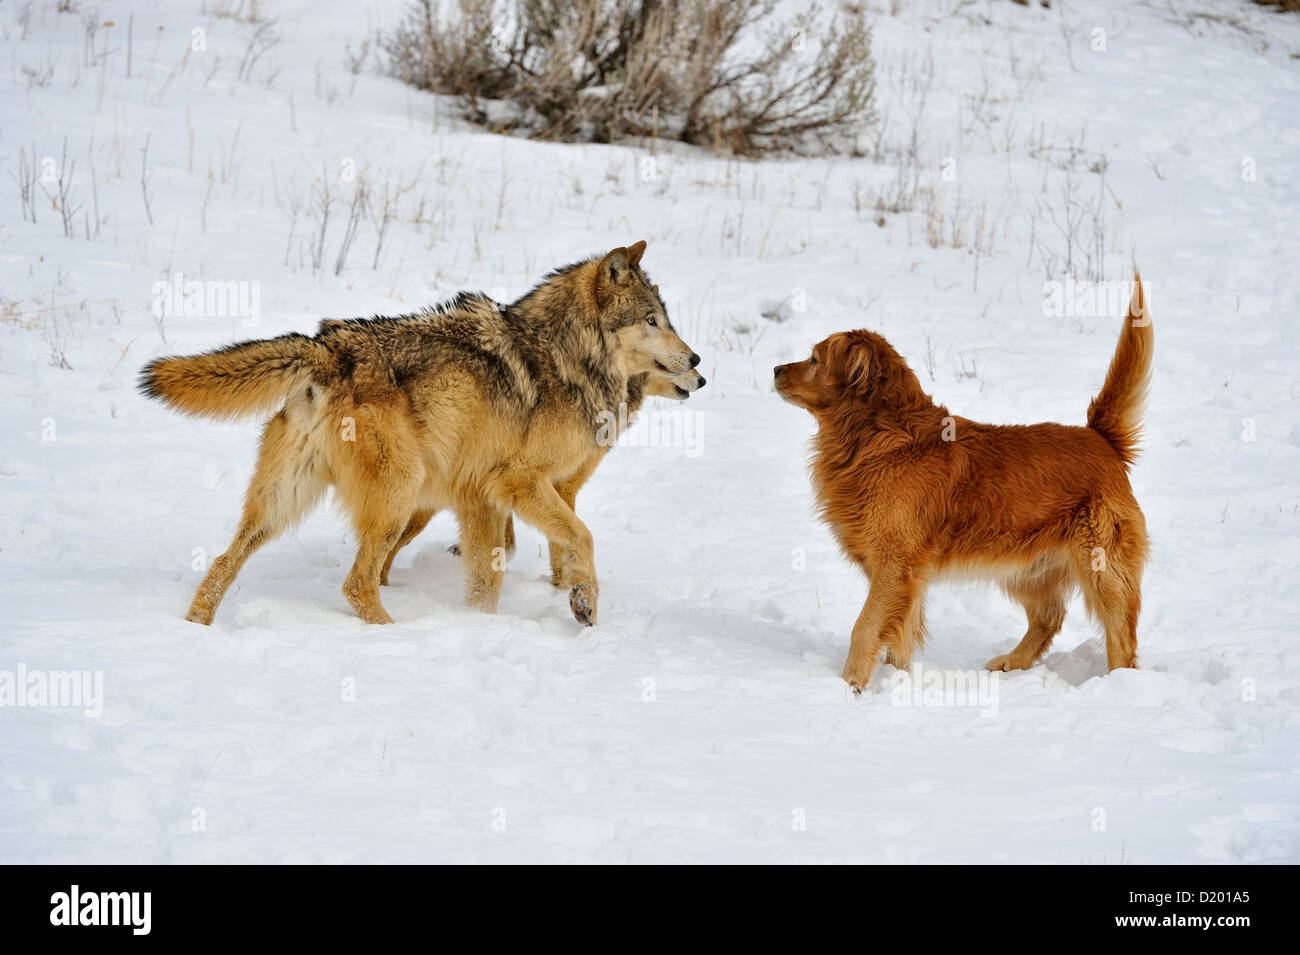 Gray wolf (Canis lupus) interacting with domestic dog Golden retriever (Canis familiaris), captive raised specimen, - Stock Image